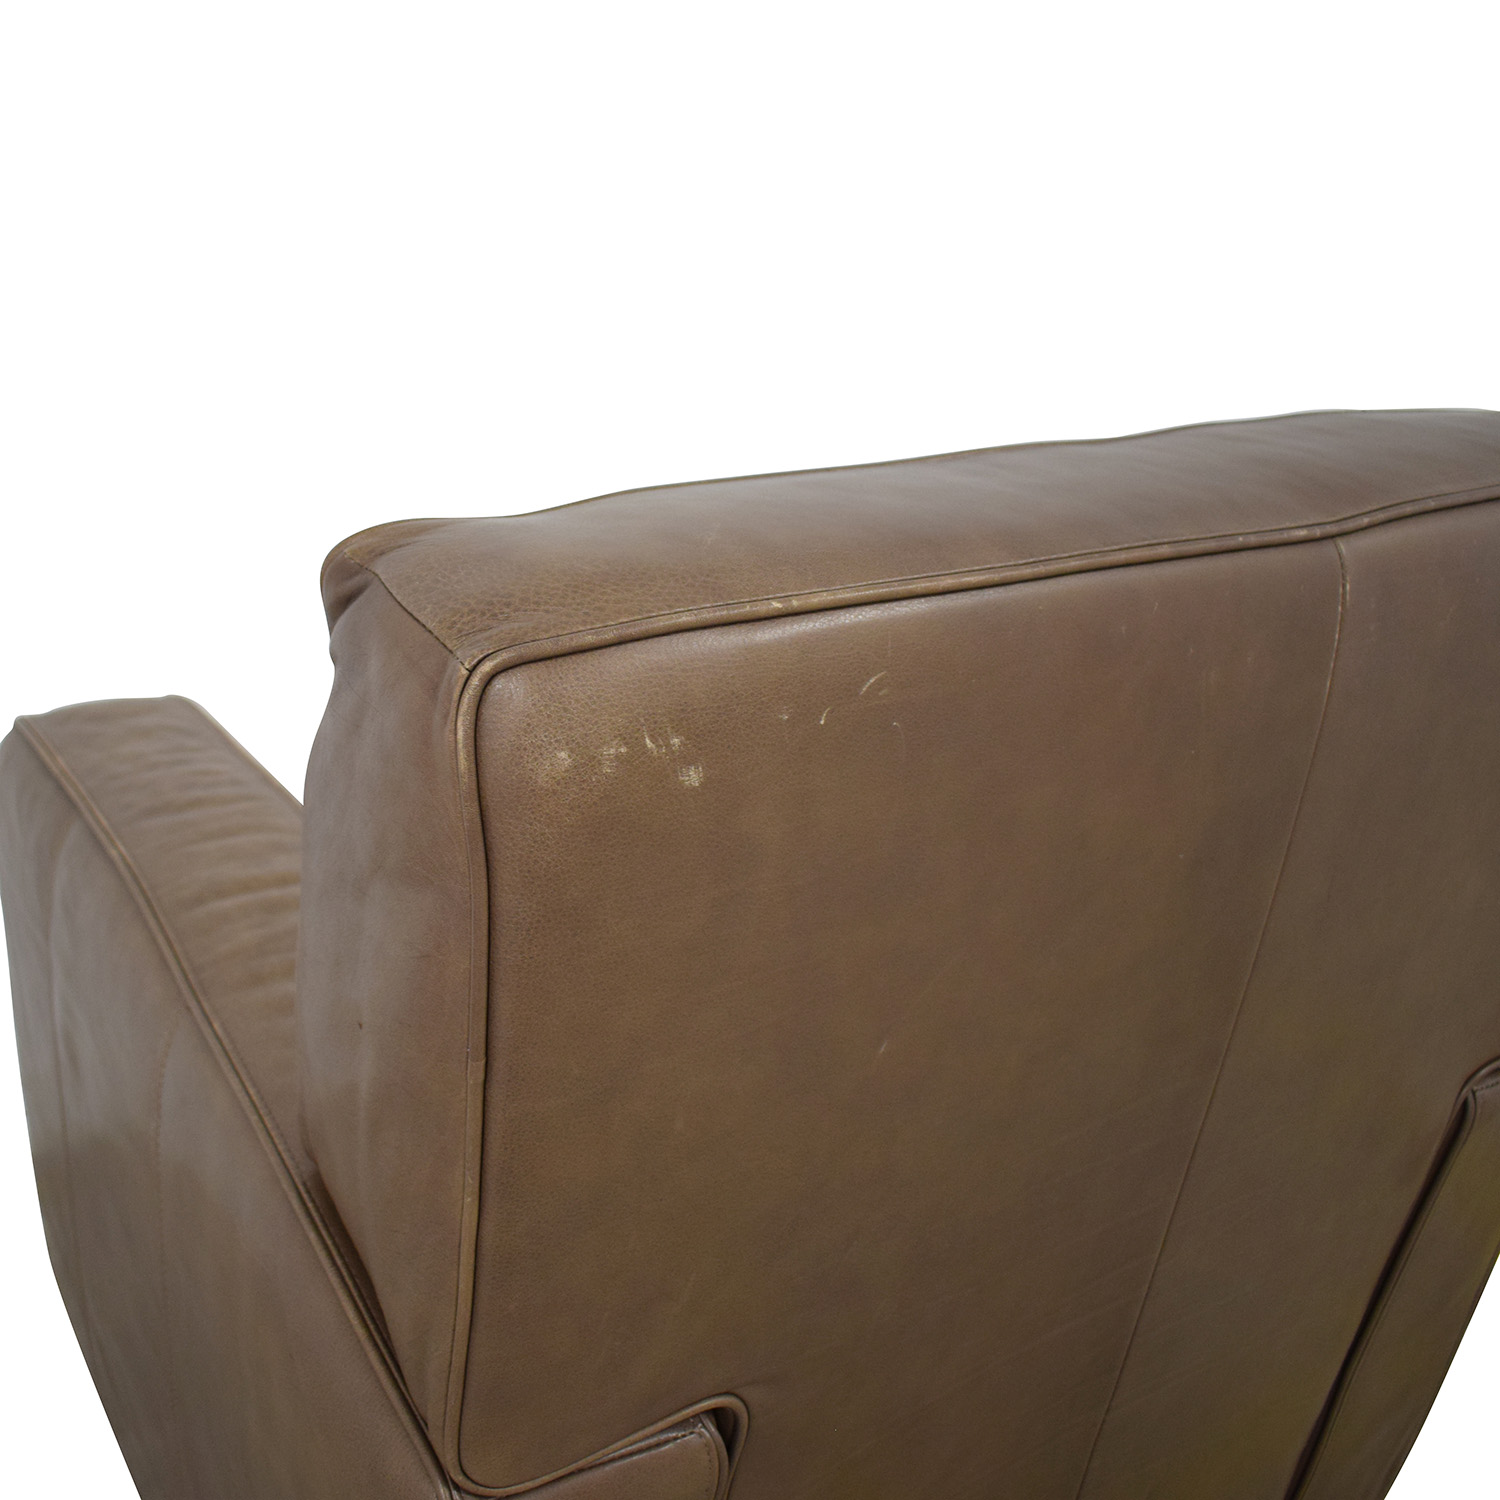 Crate & Barrel Crate & Barrel Leather Recliner Chair price